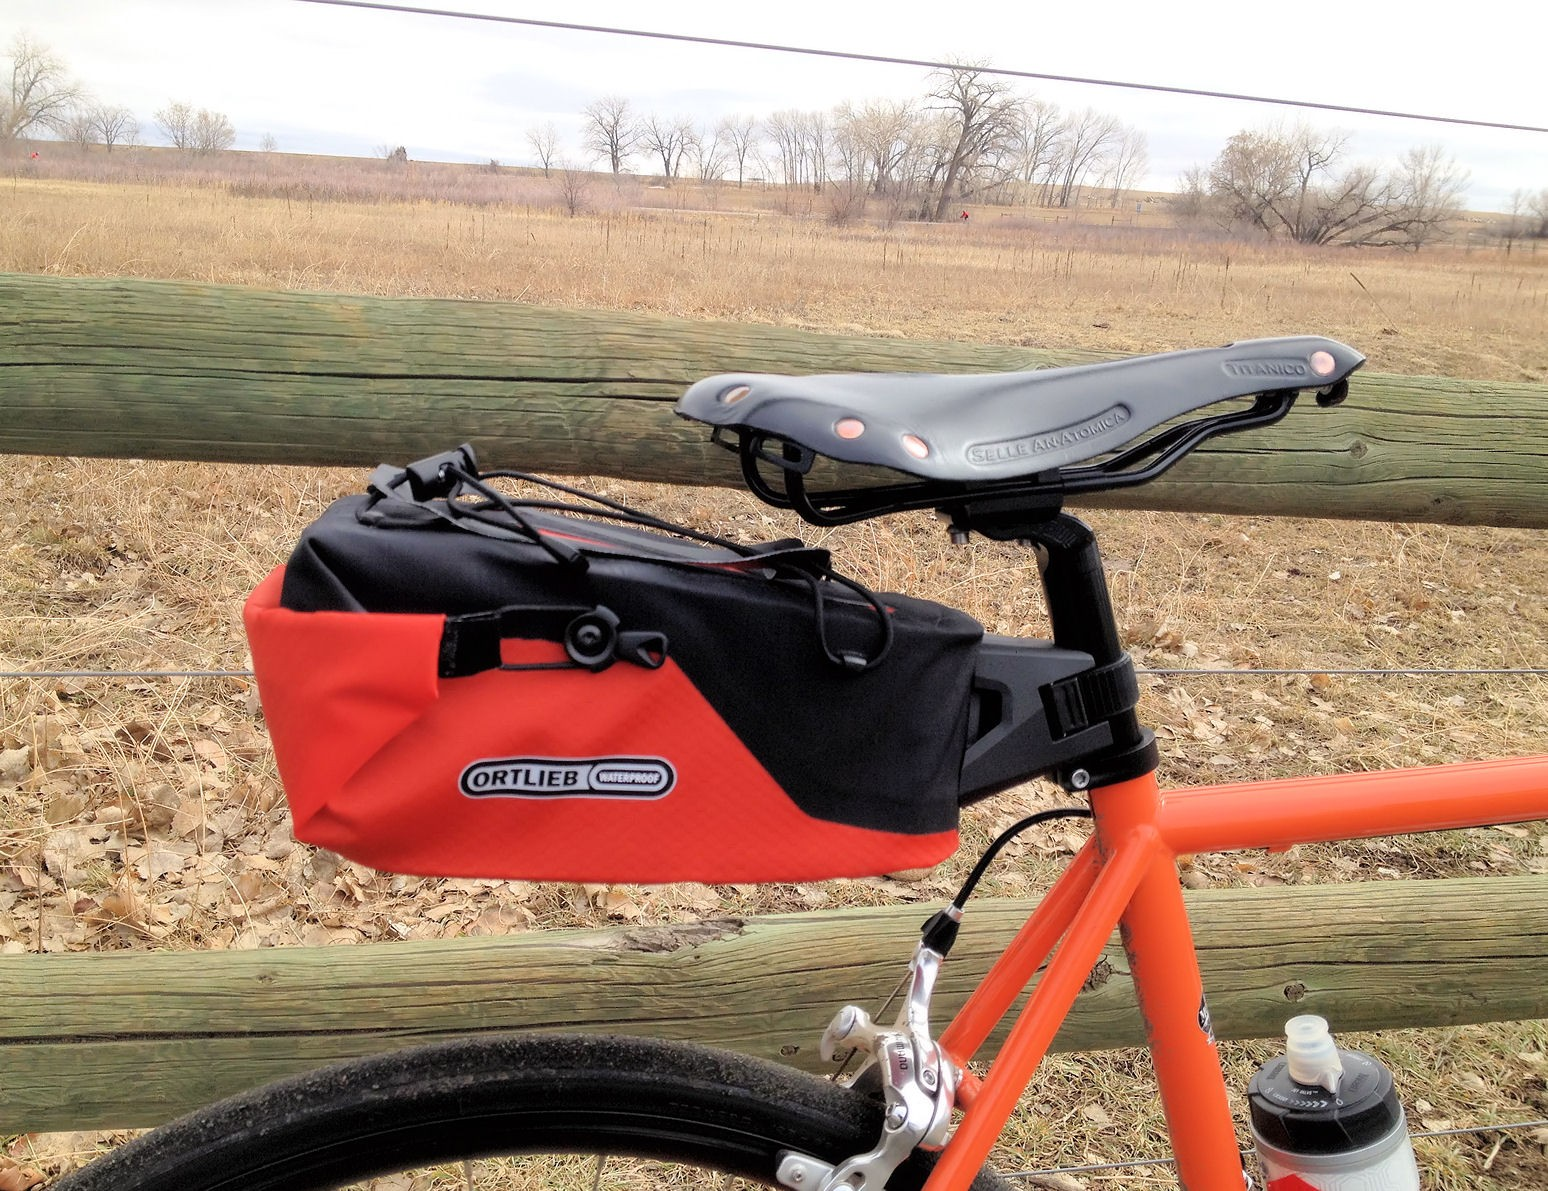 Gravelbike Gravel Grinder Ortlieb Seatpost Bag Black Mountain Cycles E Anatomica Paul Component Engineering